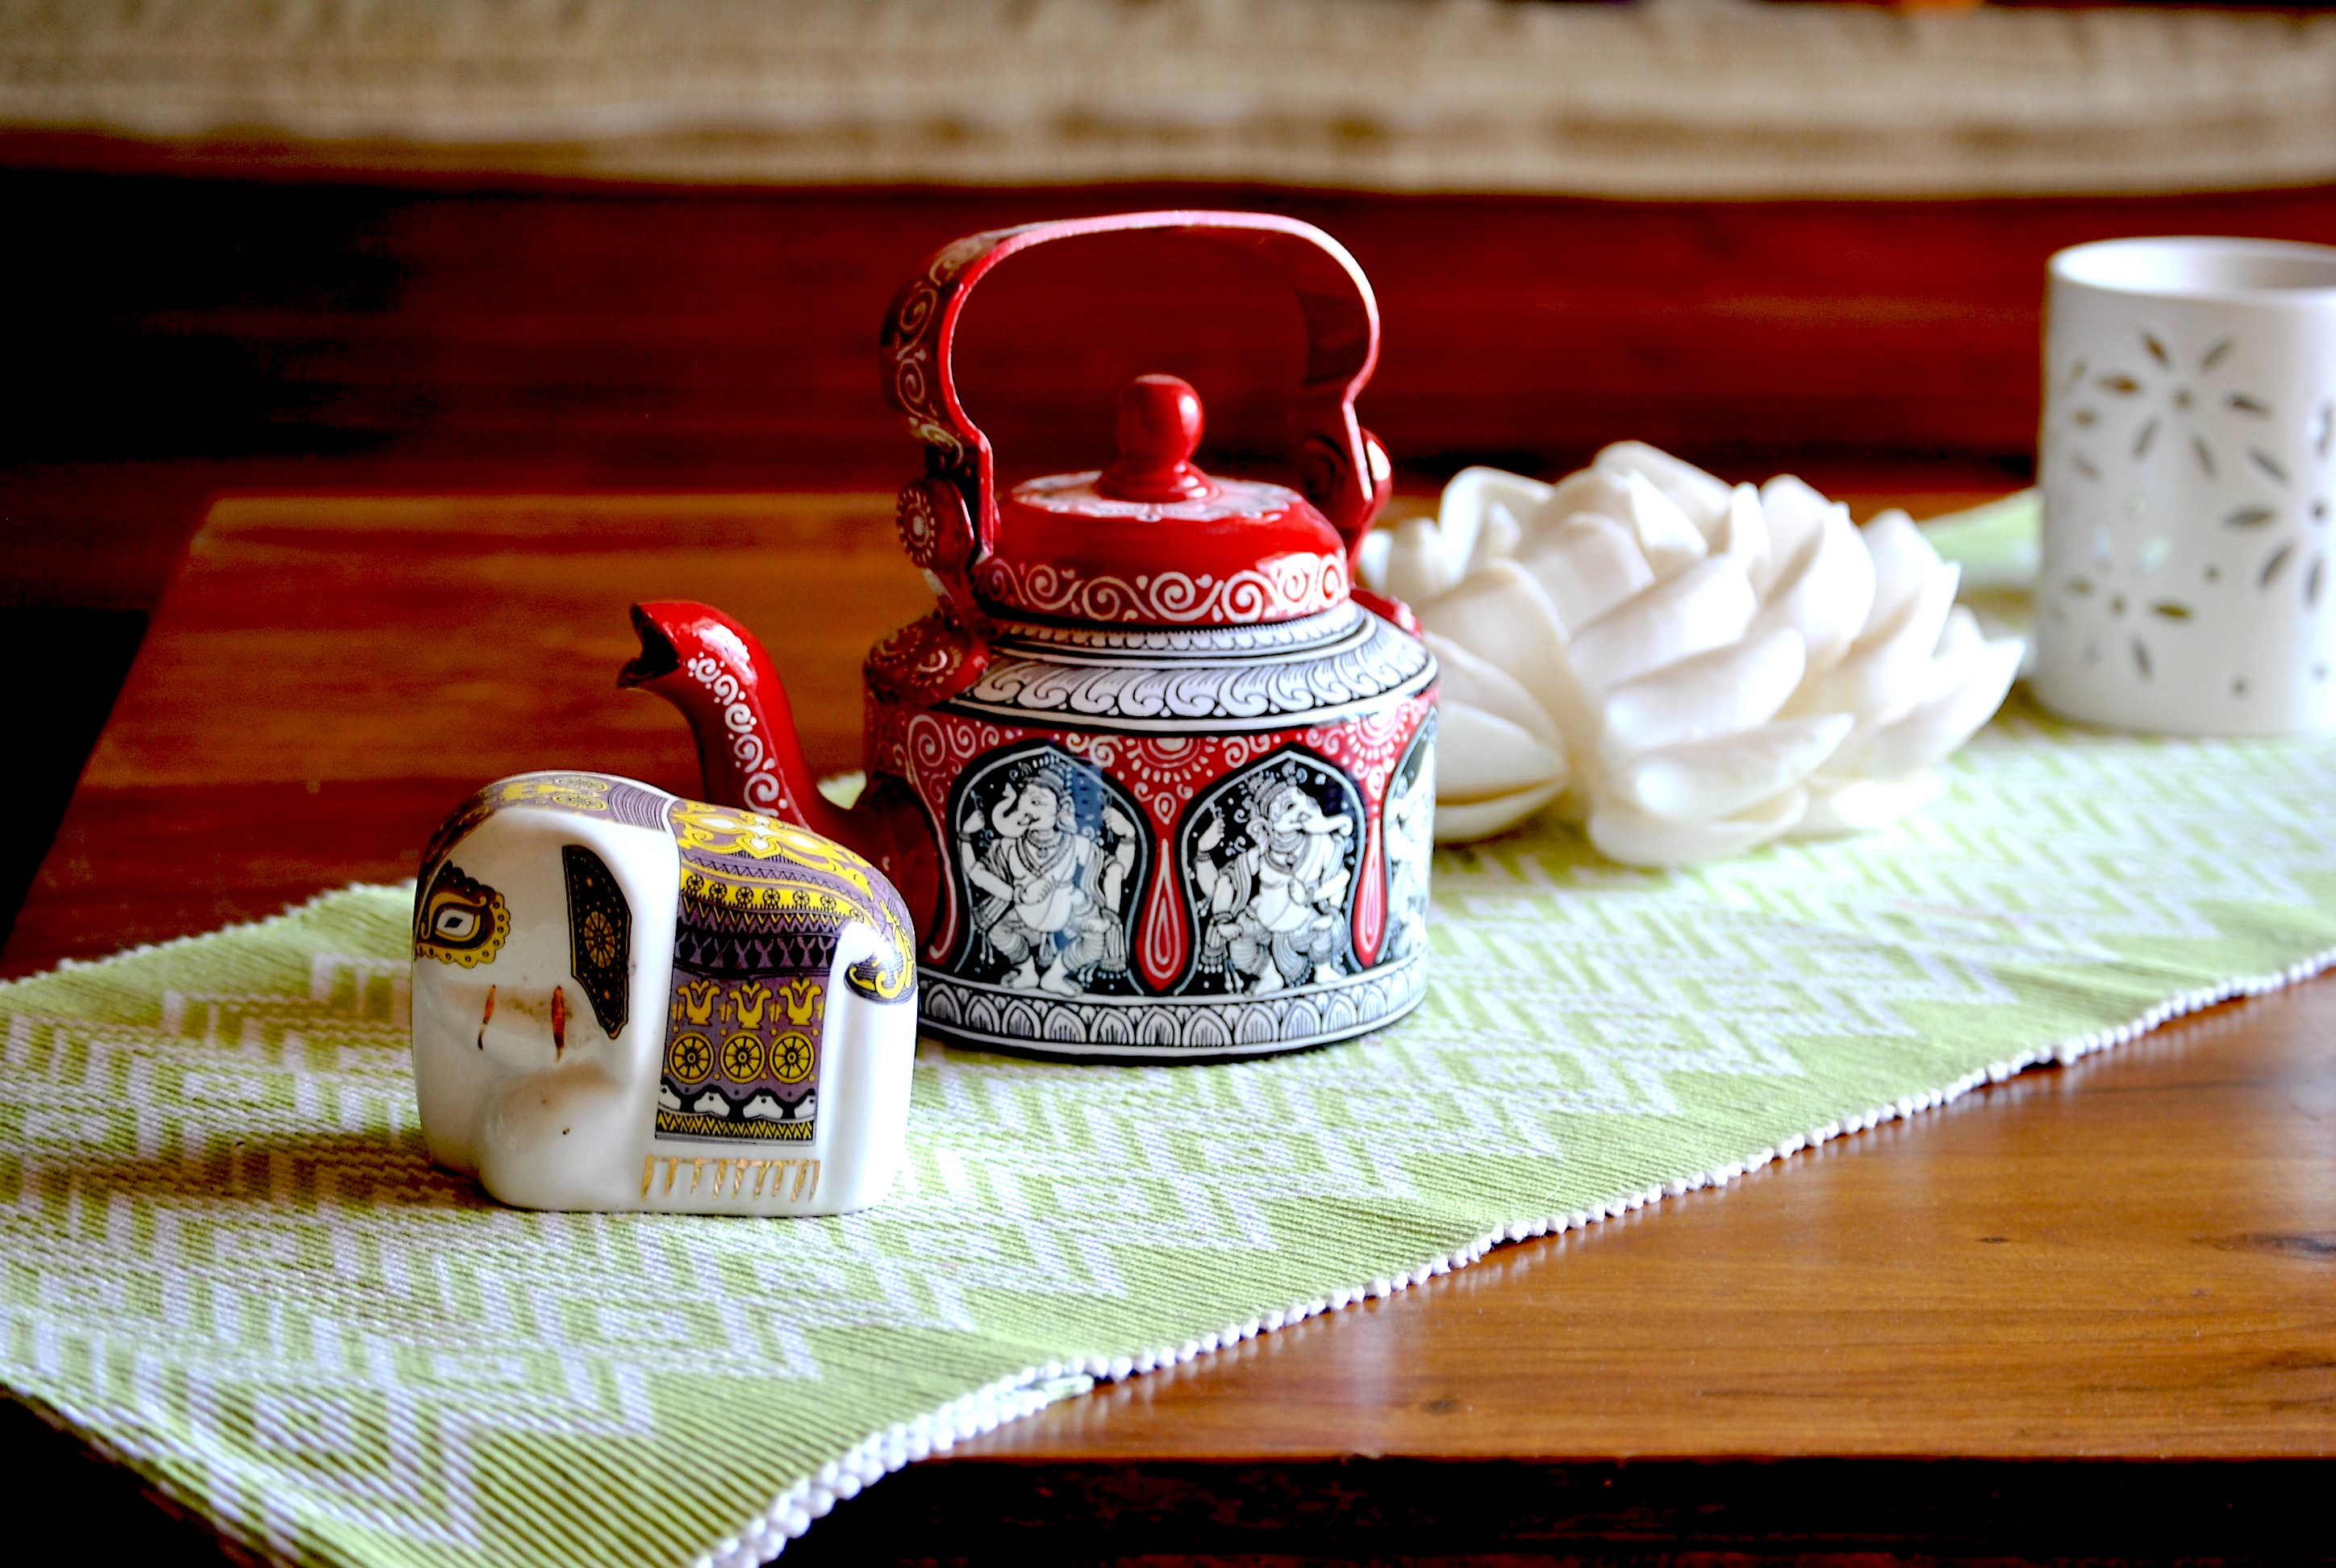 Top-decor-ideas-for-your-home-with-hand-painted-kettles1 Top decor ideas for your home with hand-painted kettles